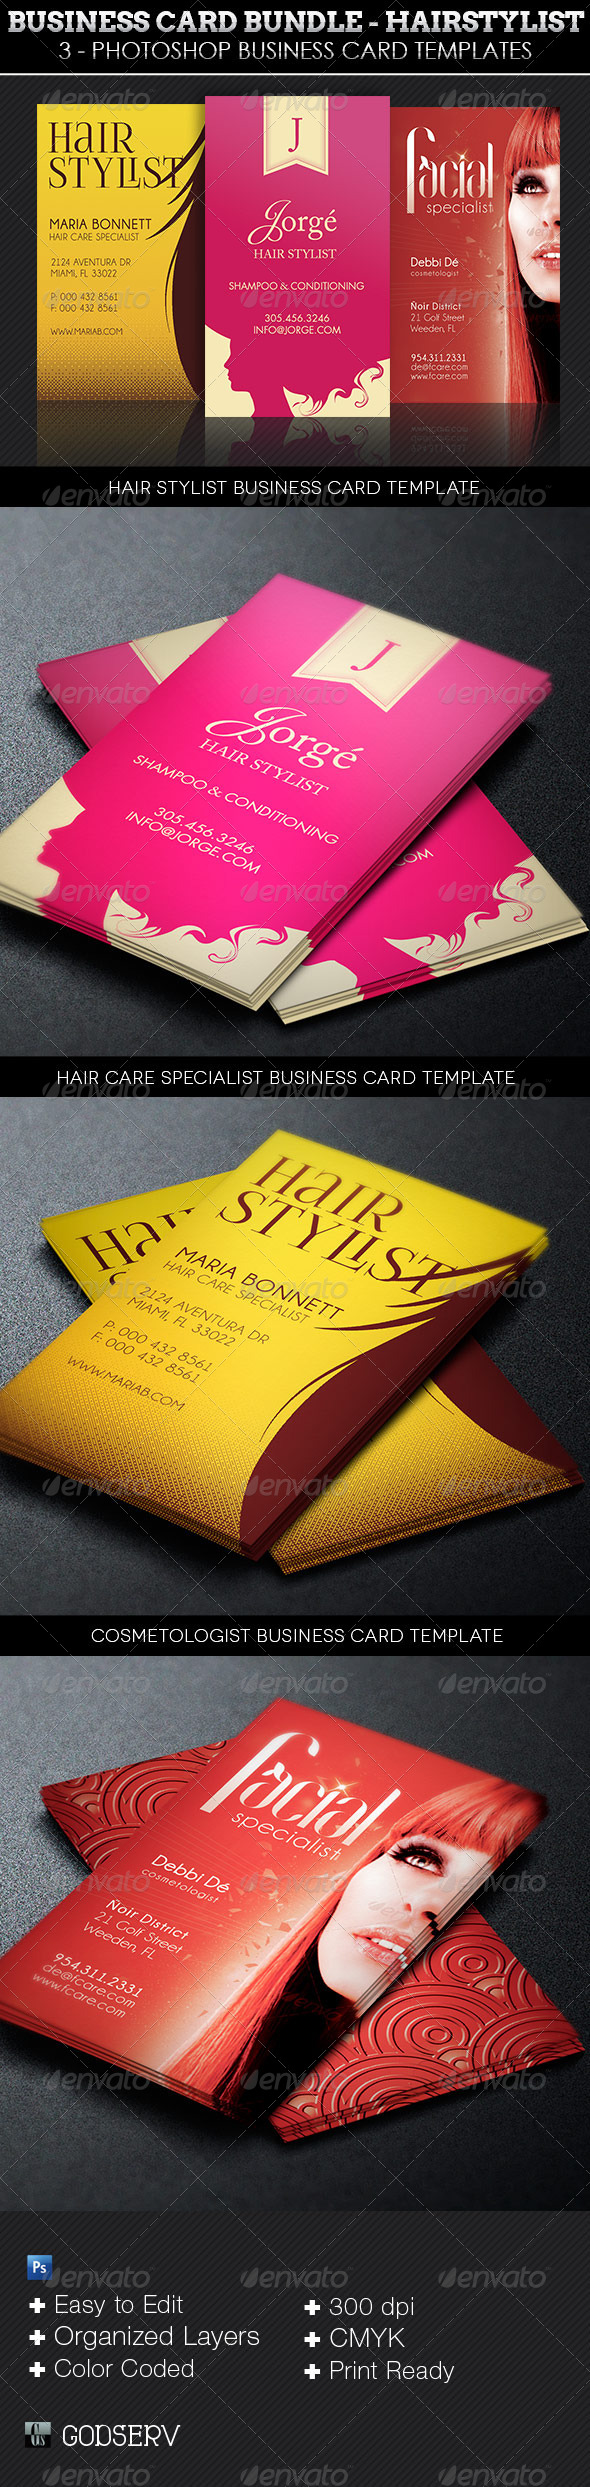 Hair Stylist Business Card Template Bundle - Industry Specific Business Cards